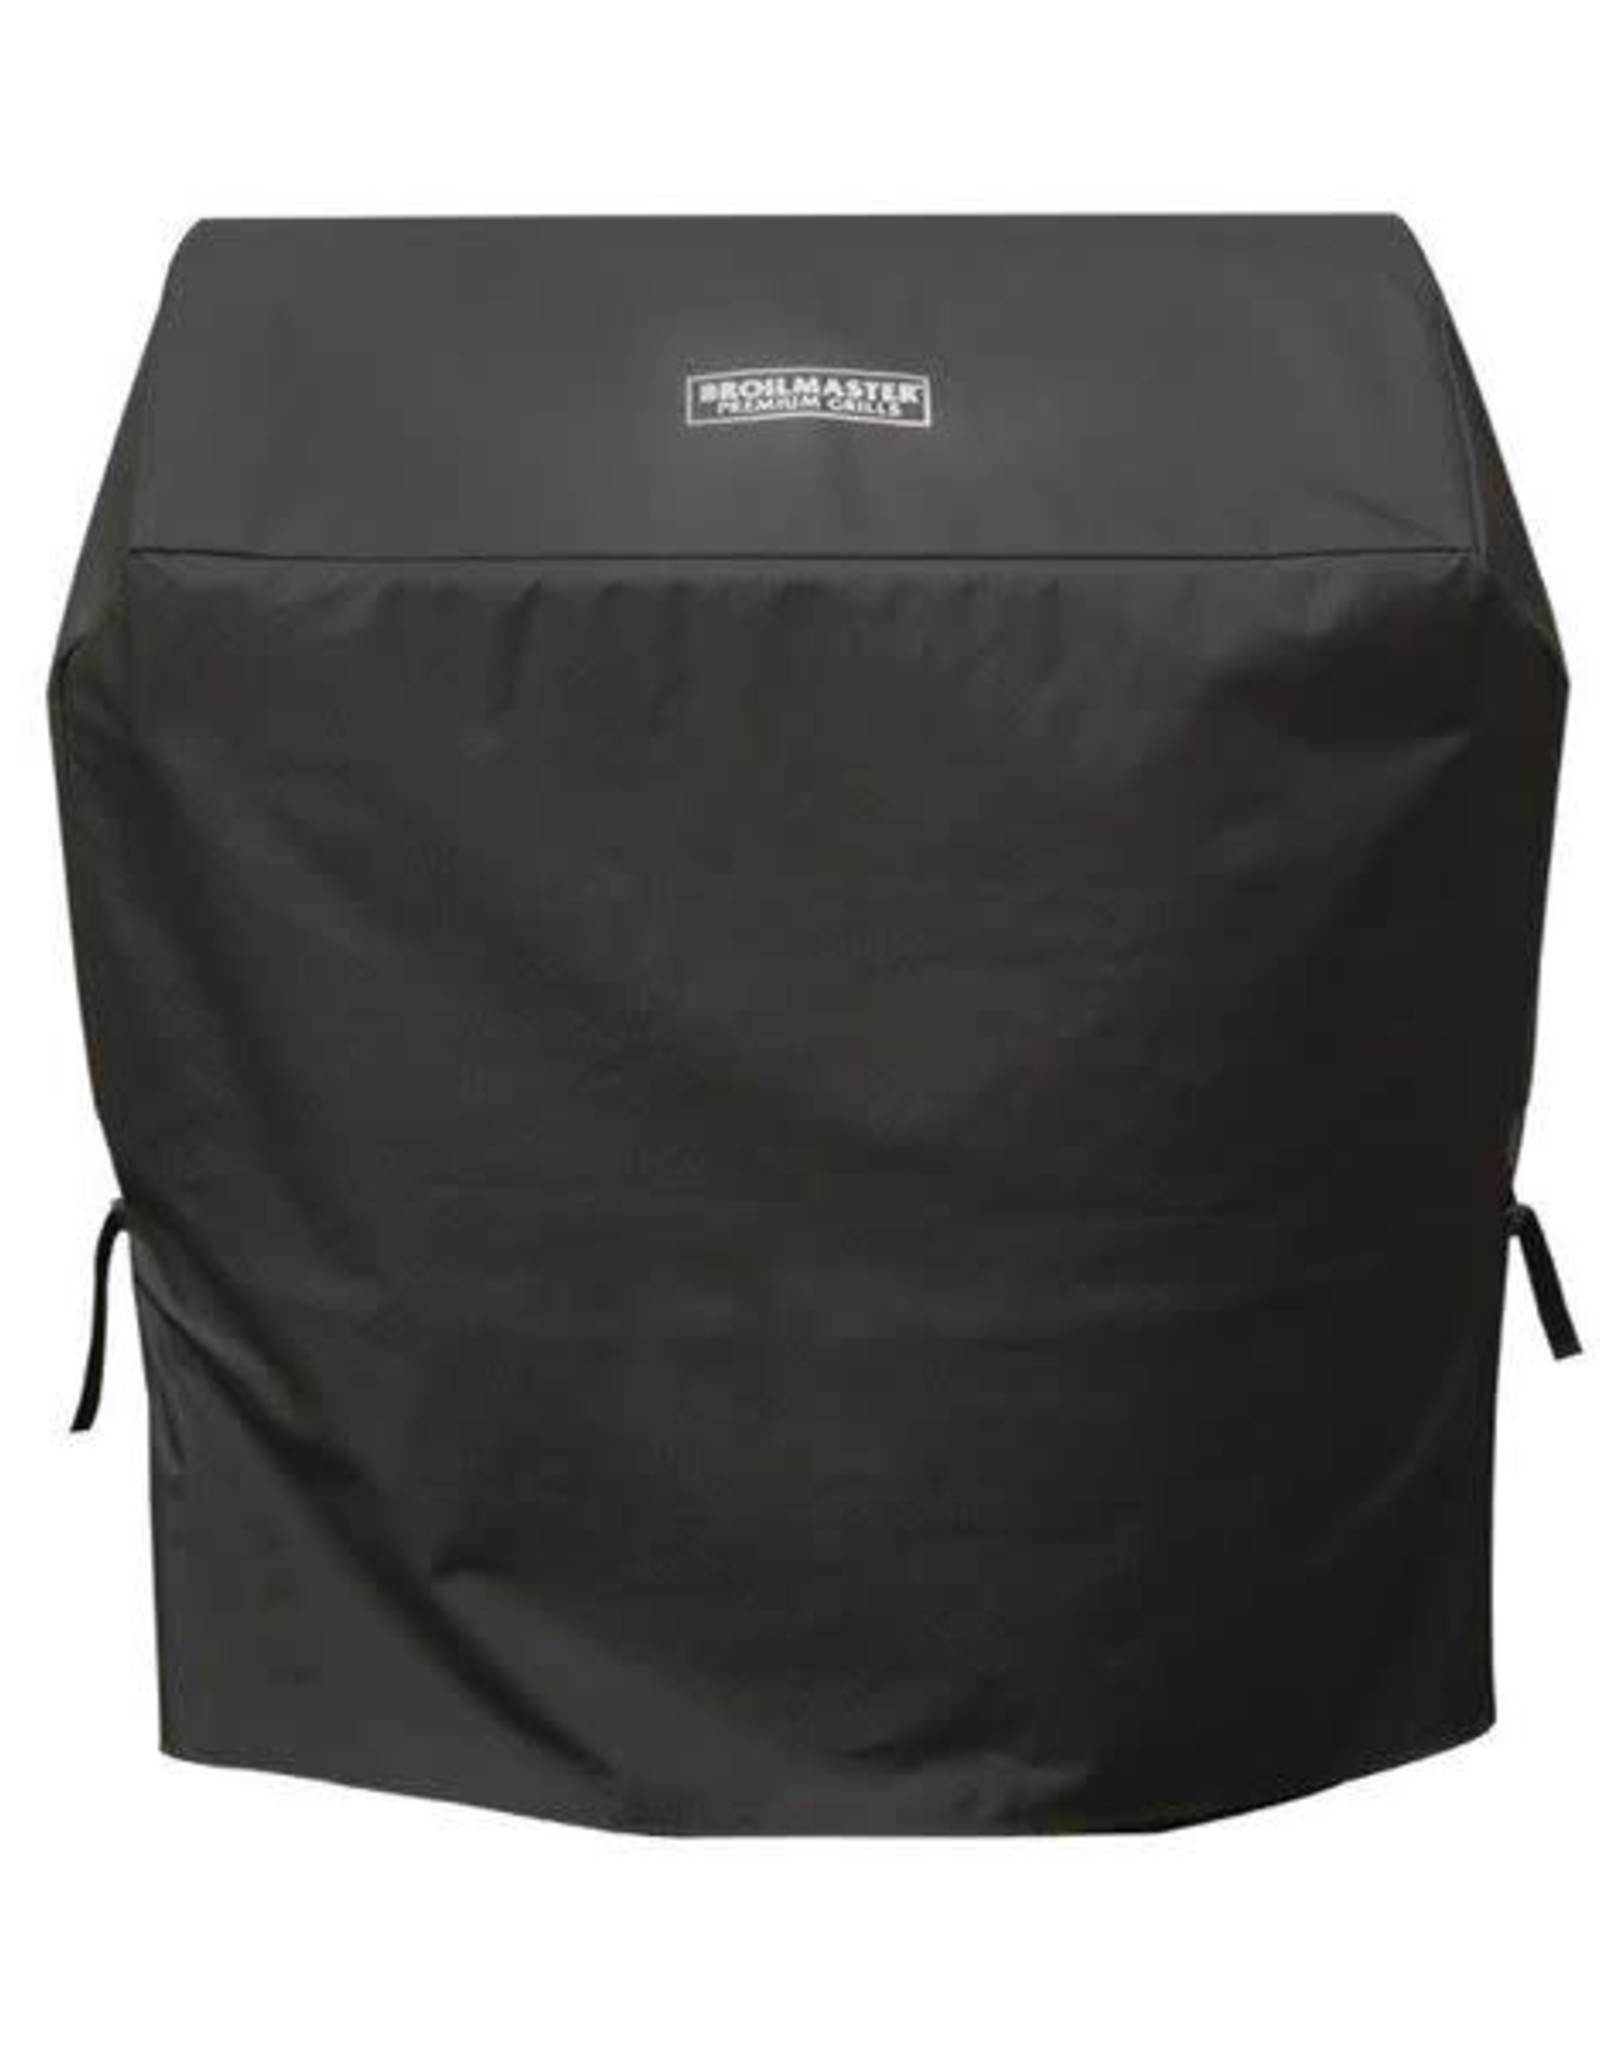 Broilmaster Broilmaster Cover for 26-in. Grill on Cart - BSACV26L